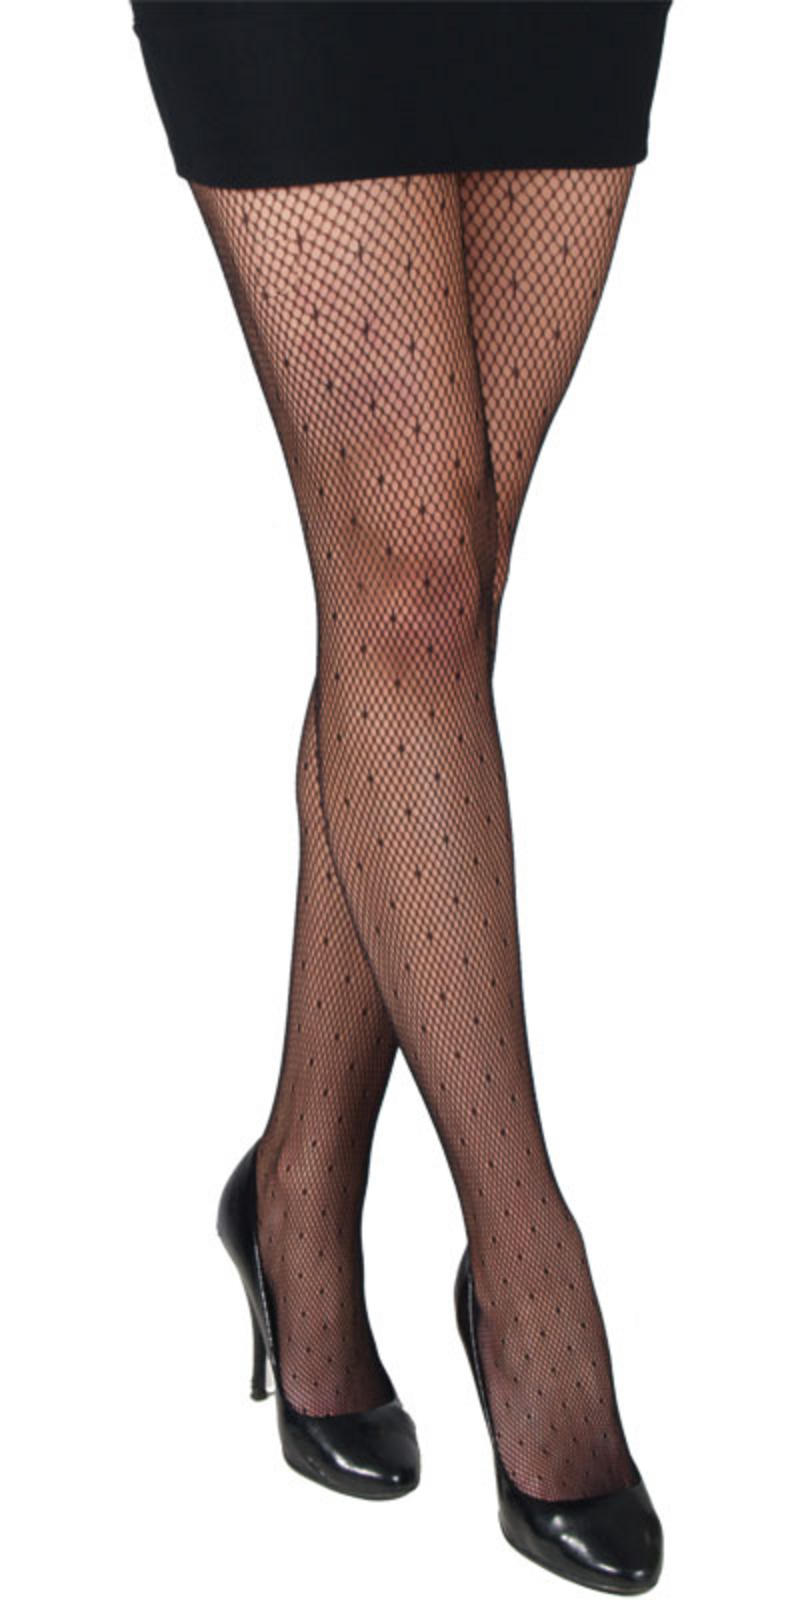 Black fishnet patterned fashion tights lingerie new for Fish net tights